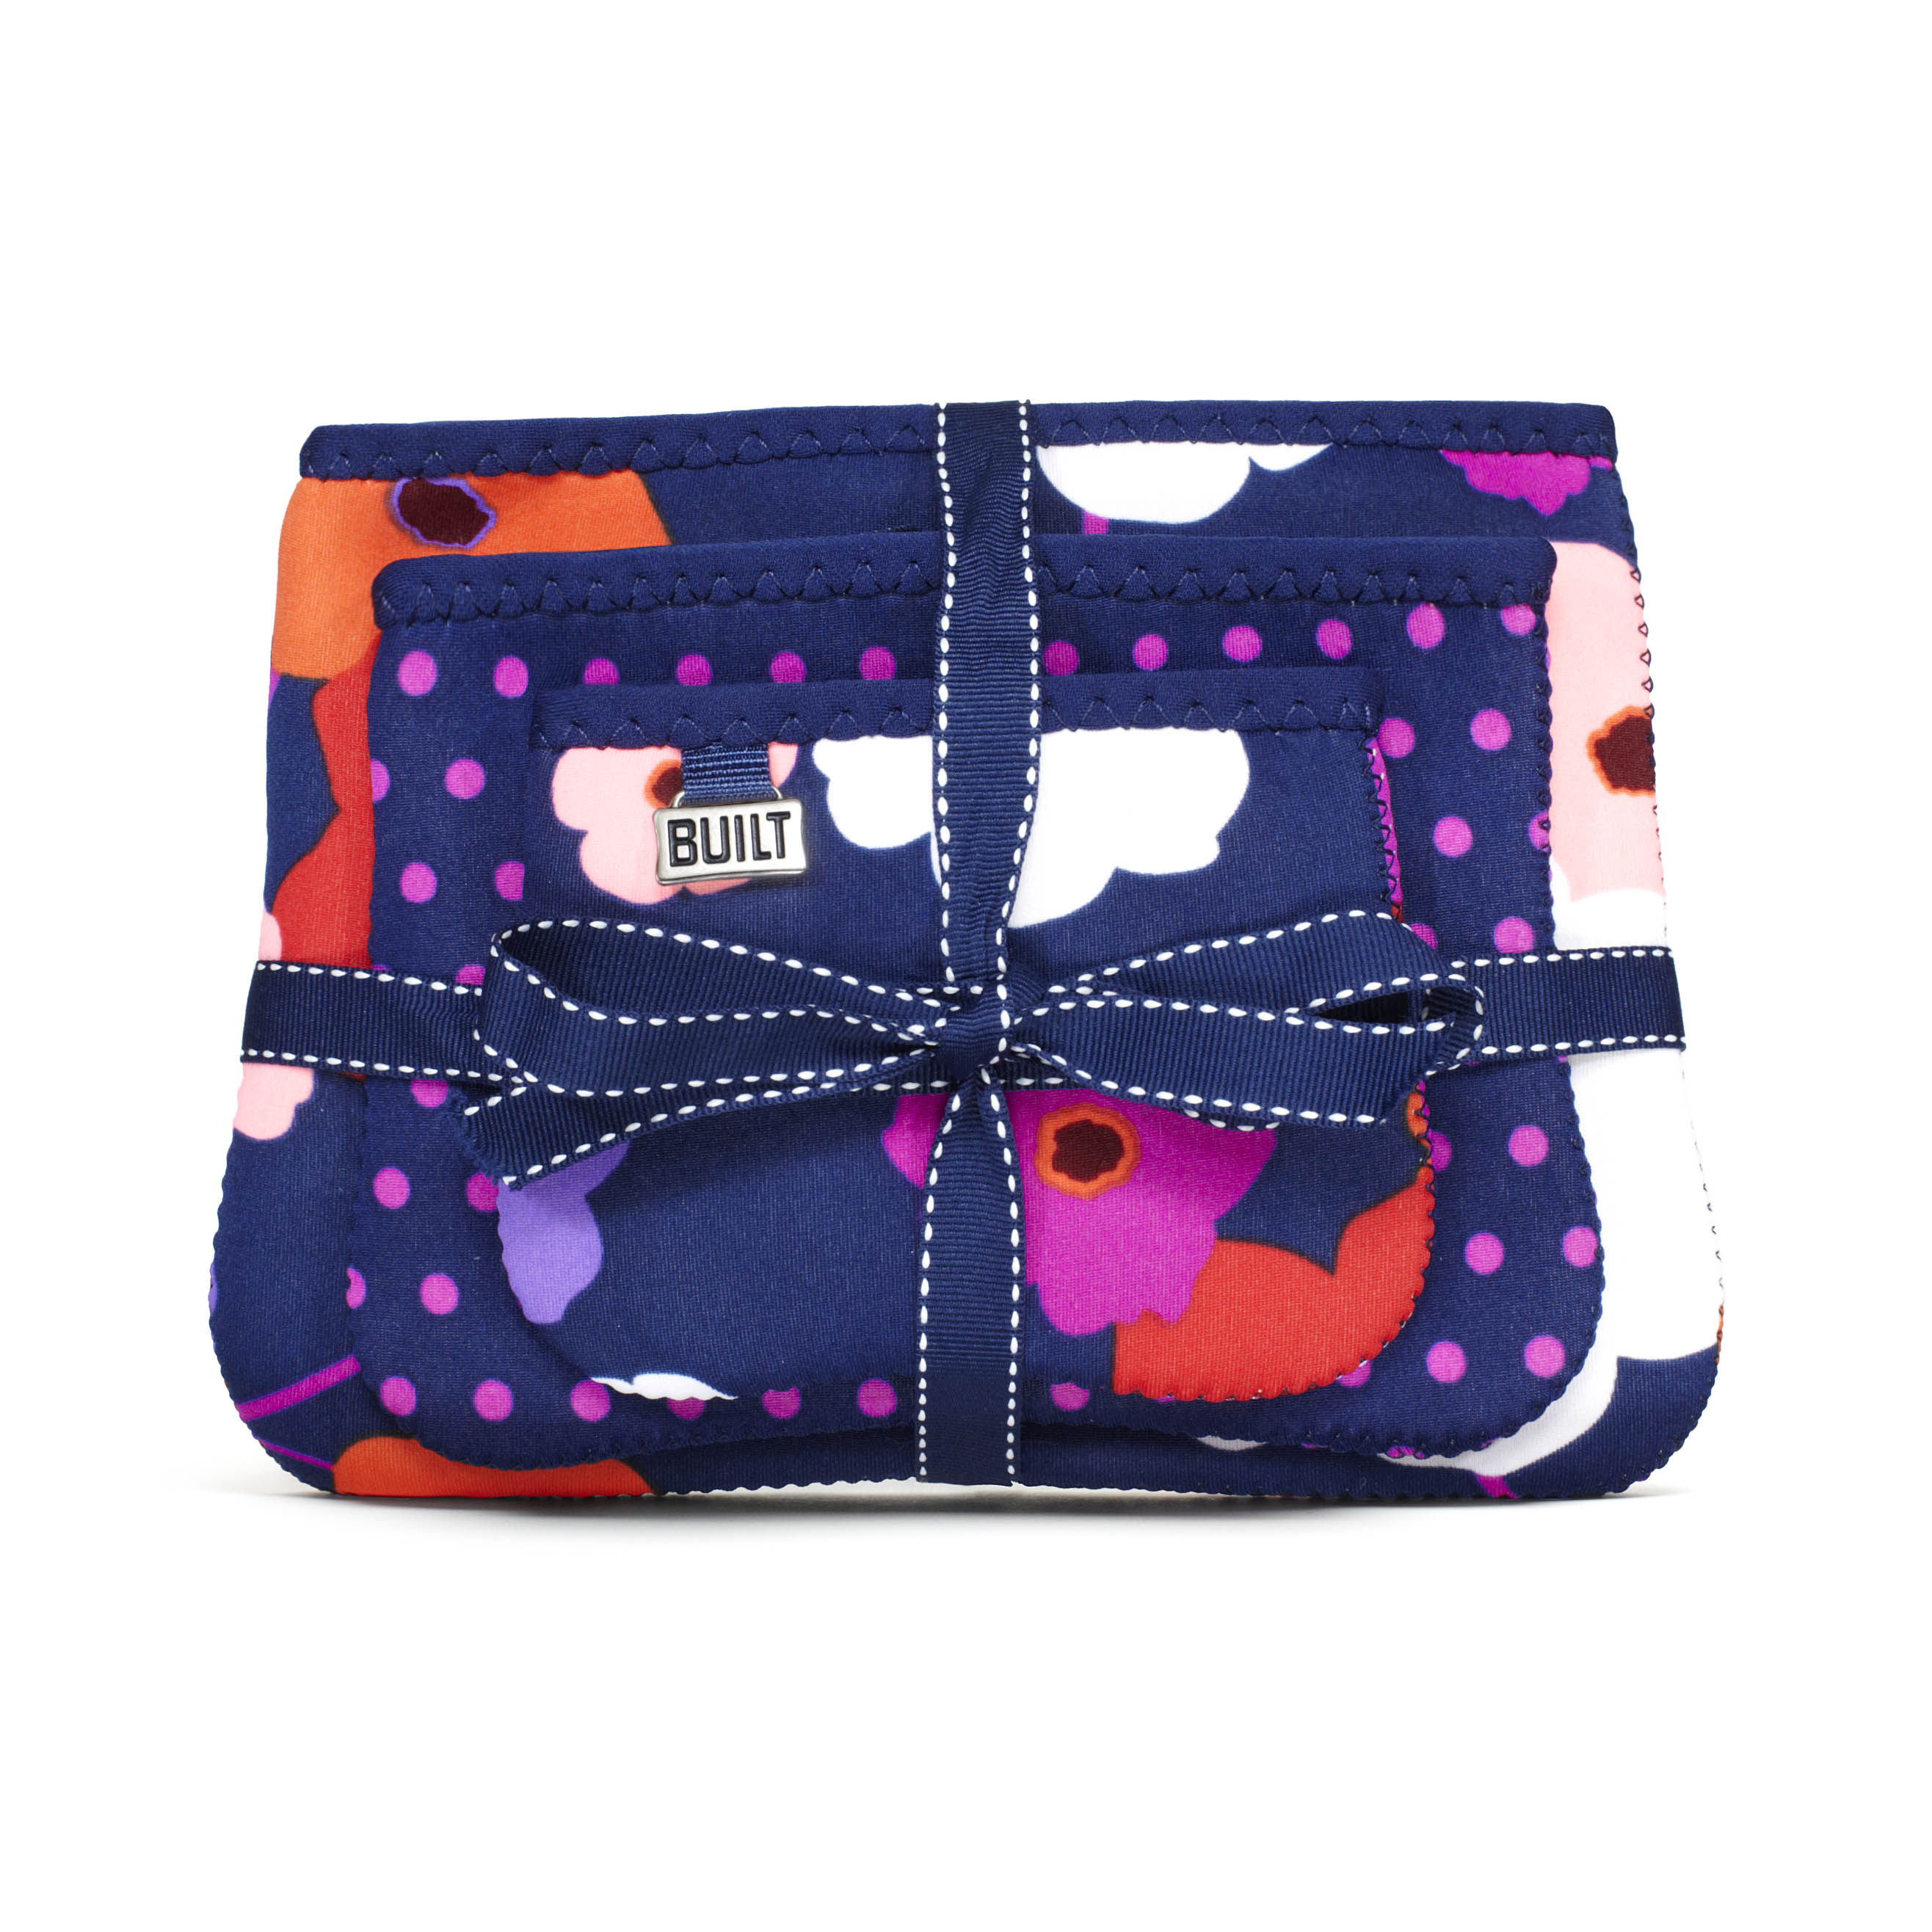 BPC - Zip Cosmetic Pouches 3pk Lush Flower and Mini Dot Navy